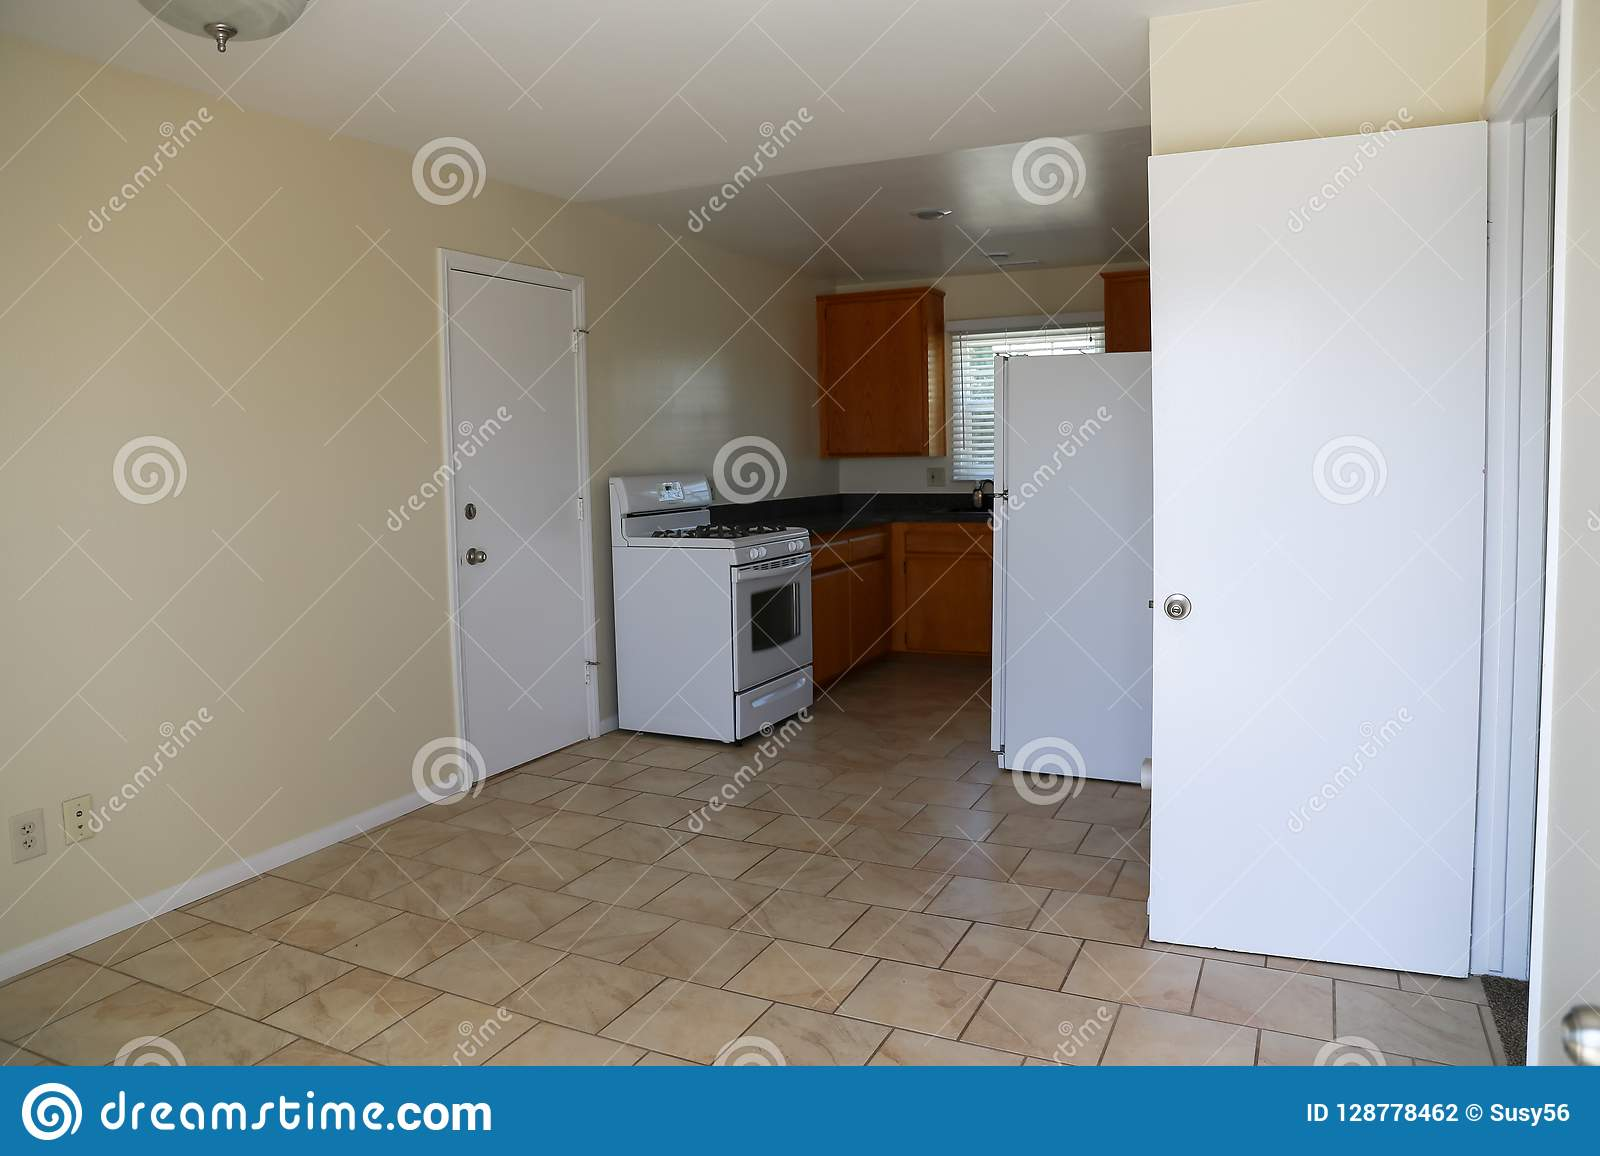 Simple Kitchen With Range Cabinets Refrigerator Tile Floor Stock